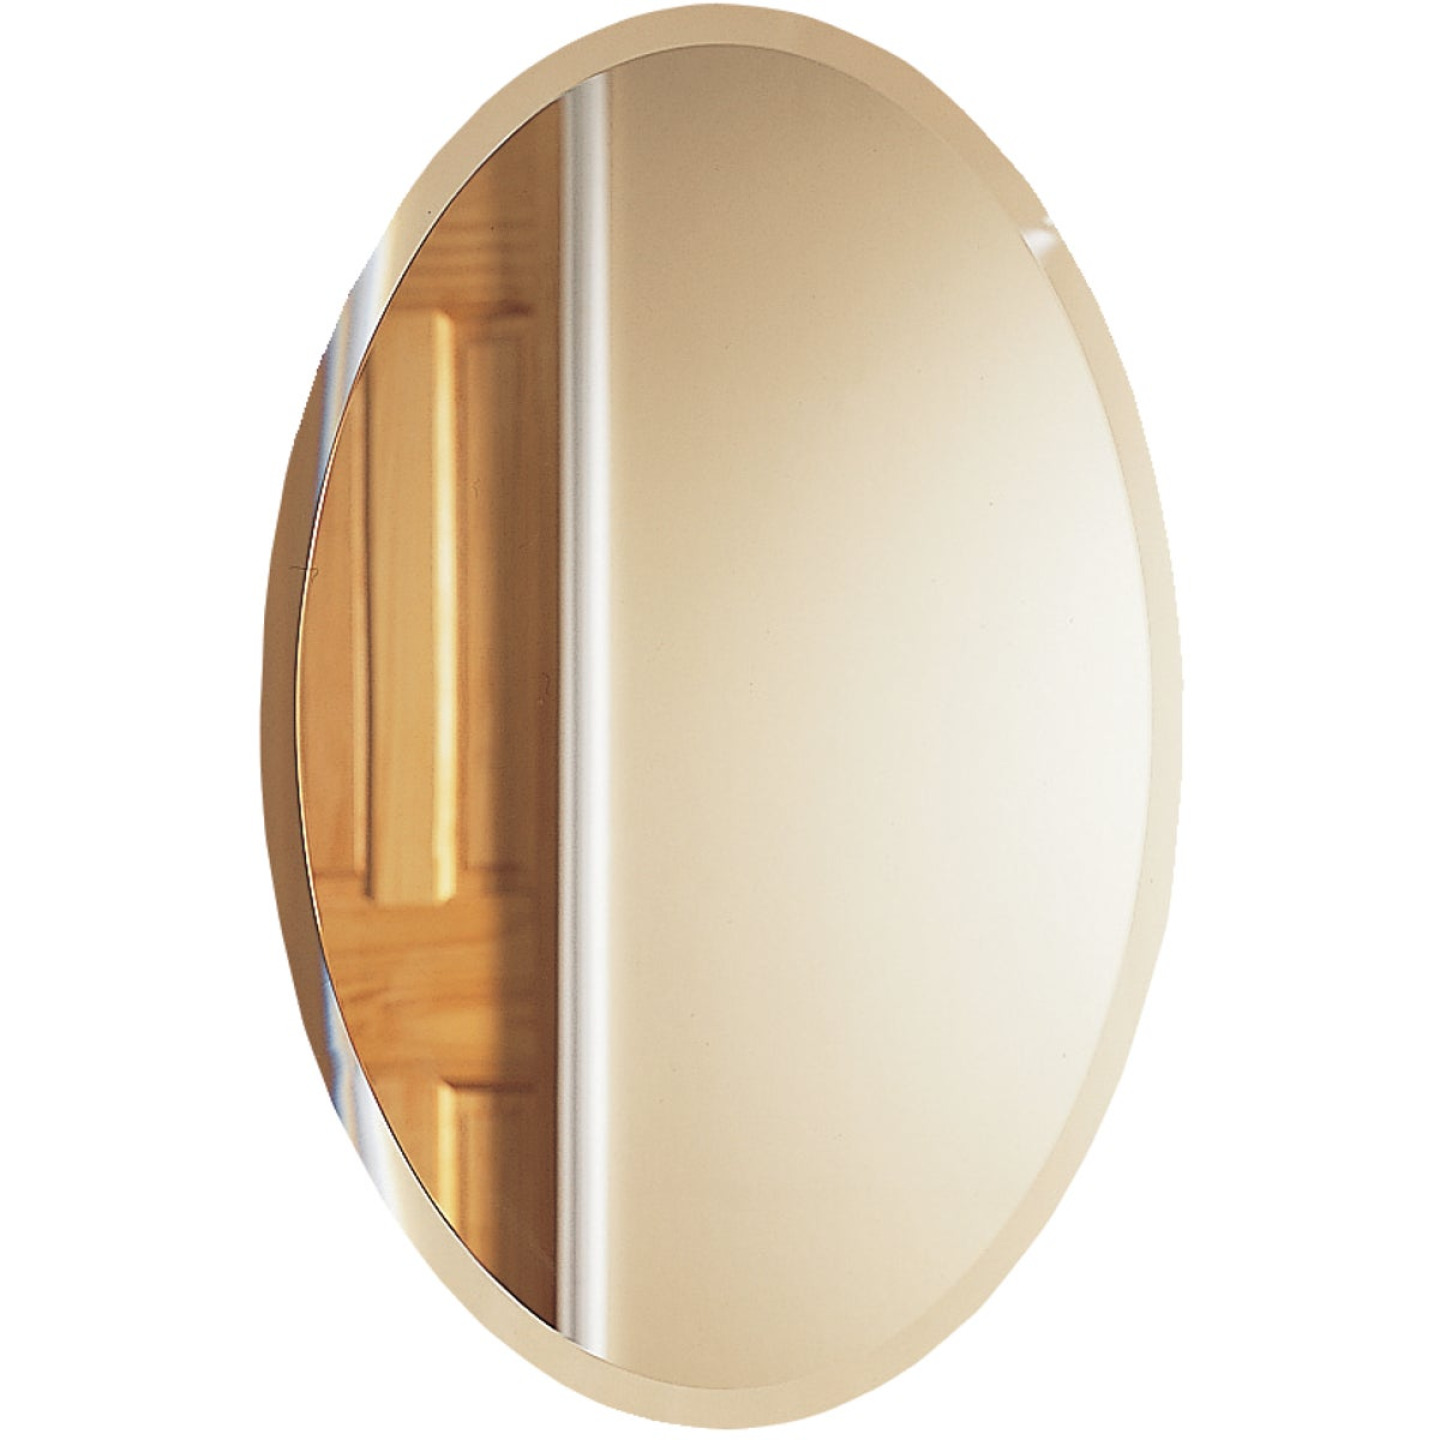 Zenith Frameless Beveled 21 In. W x 31 In. H x 4 In. D Single Mirror Surface Mount Oval Medicine Cabinet Image 1